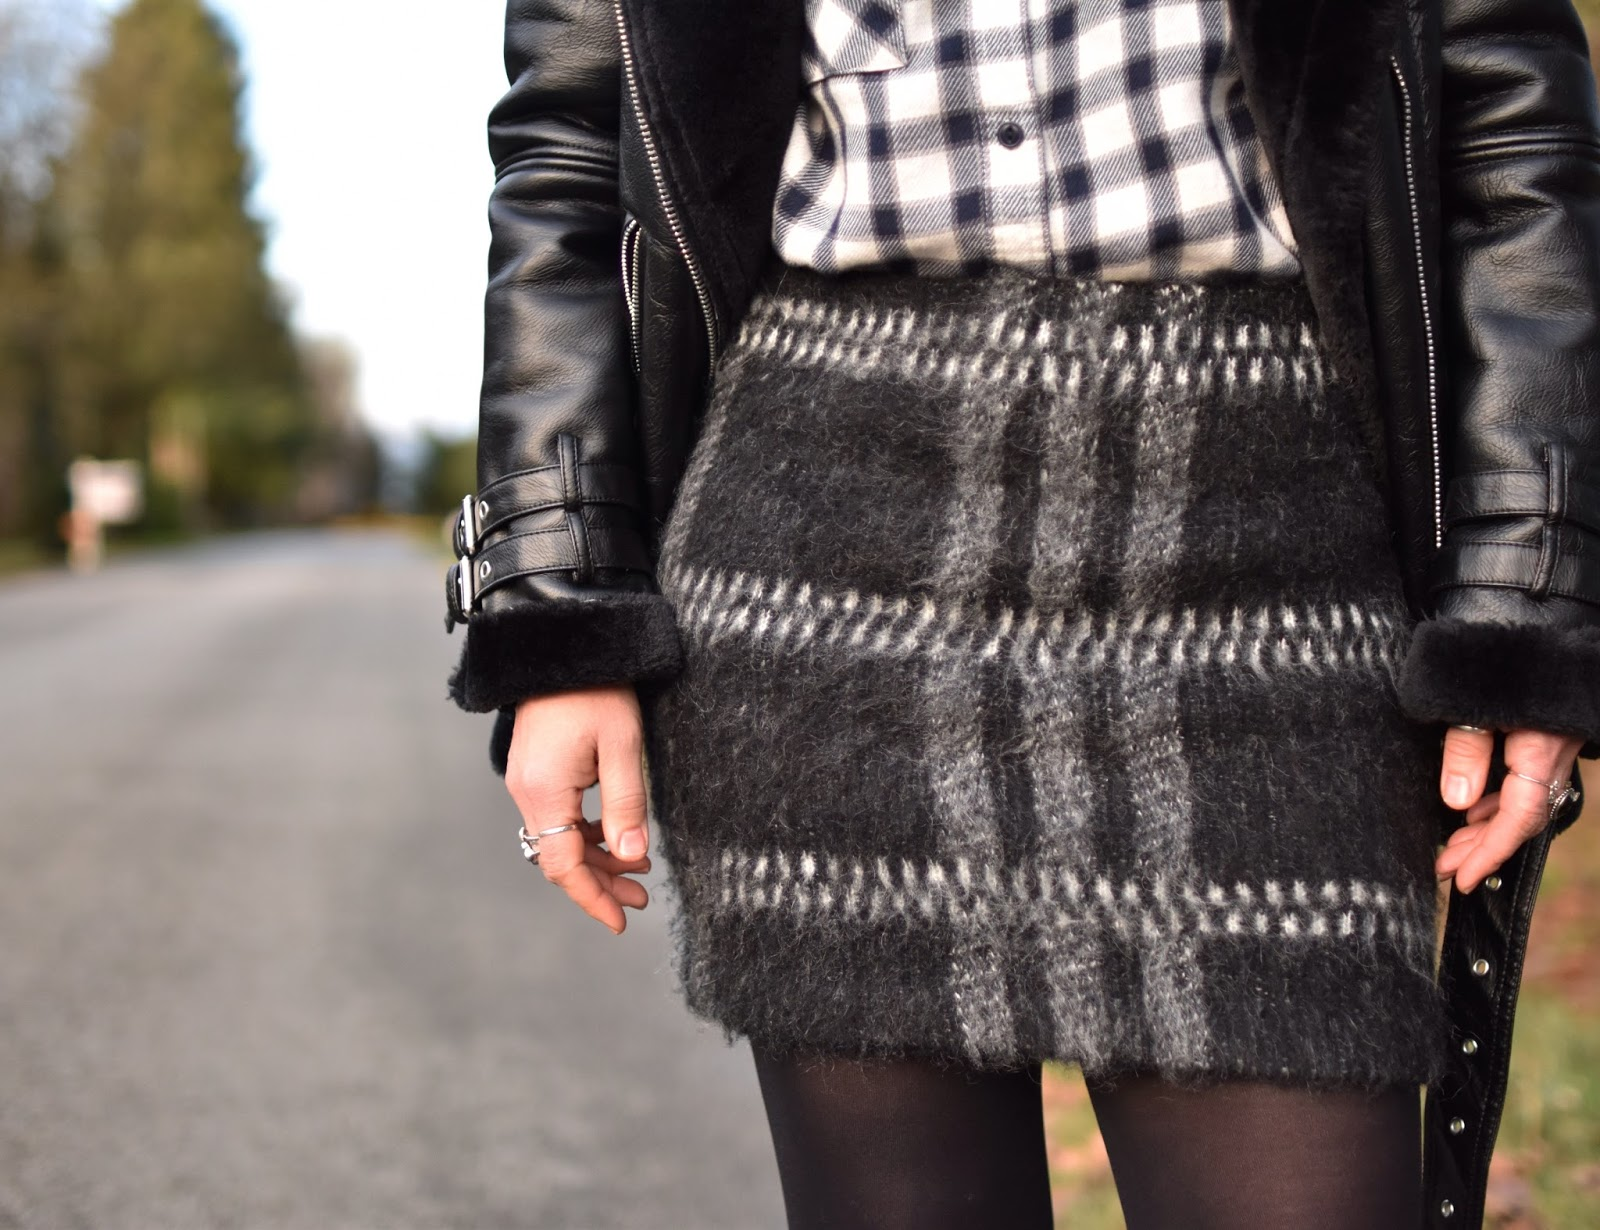 Monika Faulkner outfit inspiration - mohair miniskirt, plaid flannel shirt, opaque tights, moto-inspired coat